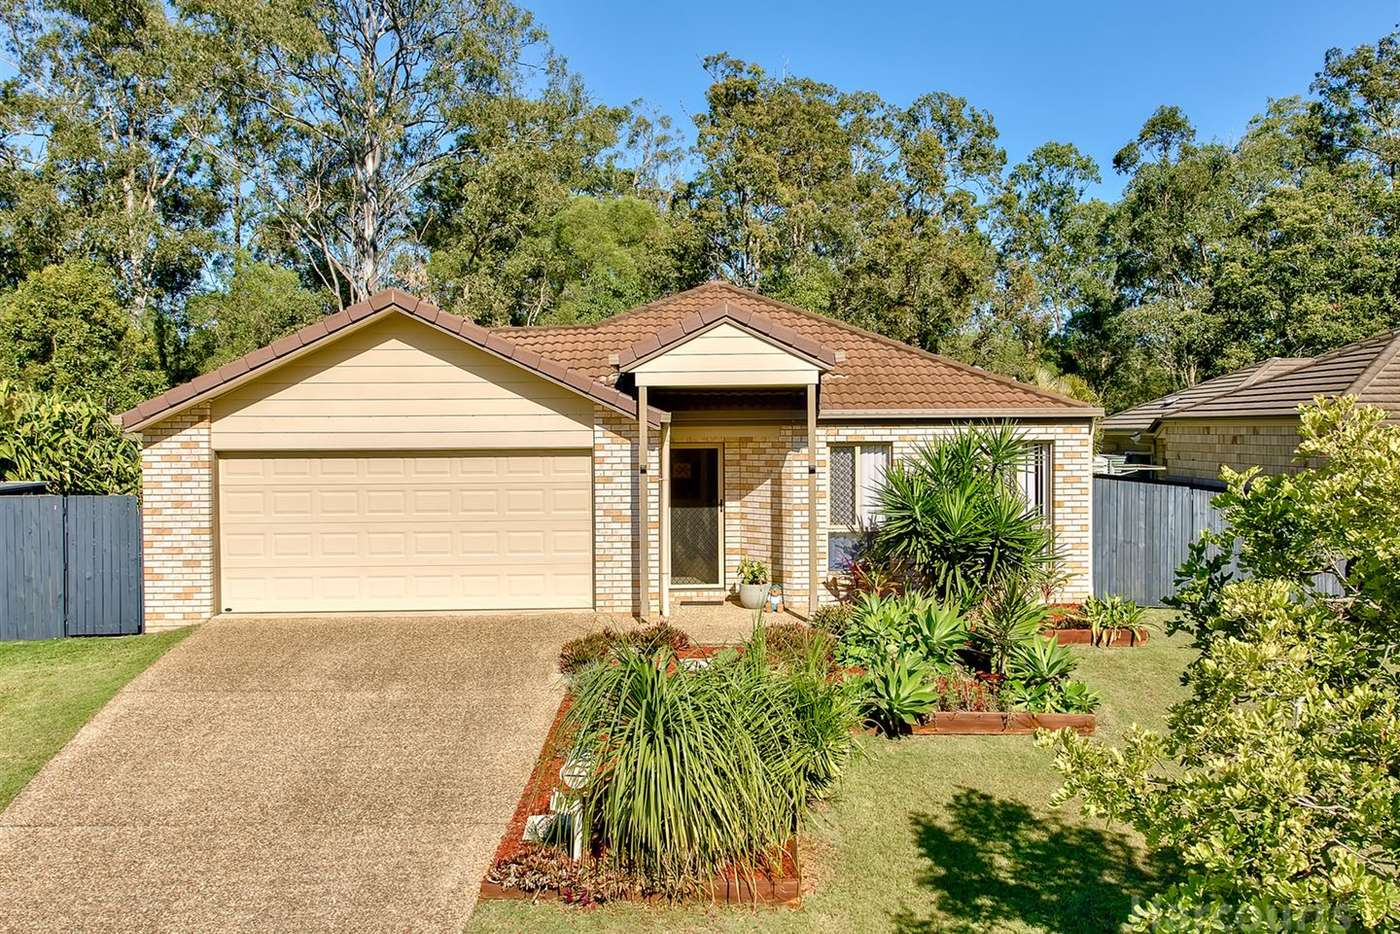 Main view of Homely house listing, 17 Mary Jane Ct, Joyner QLD 4500